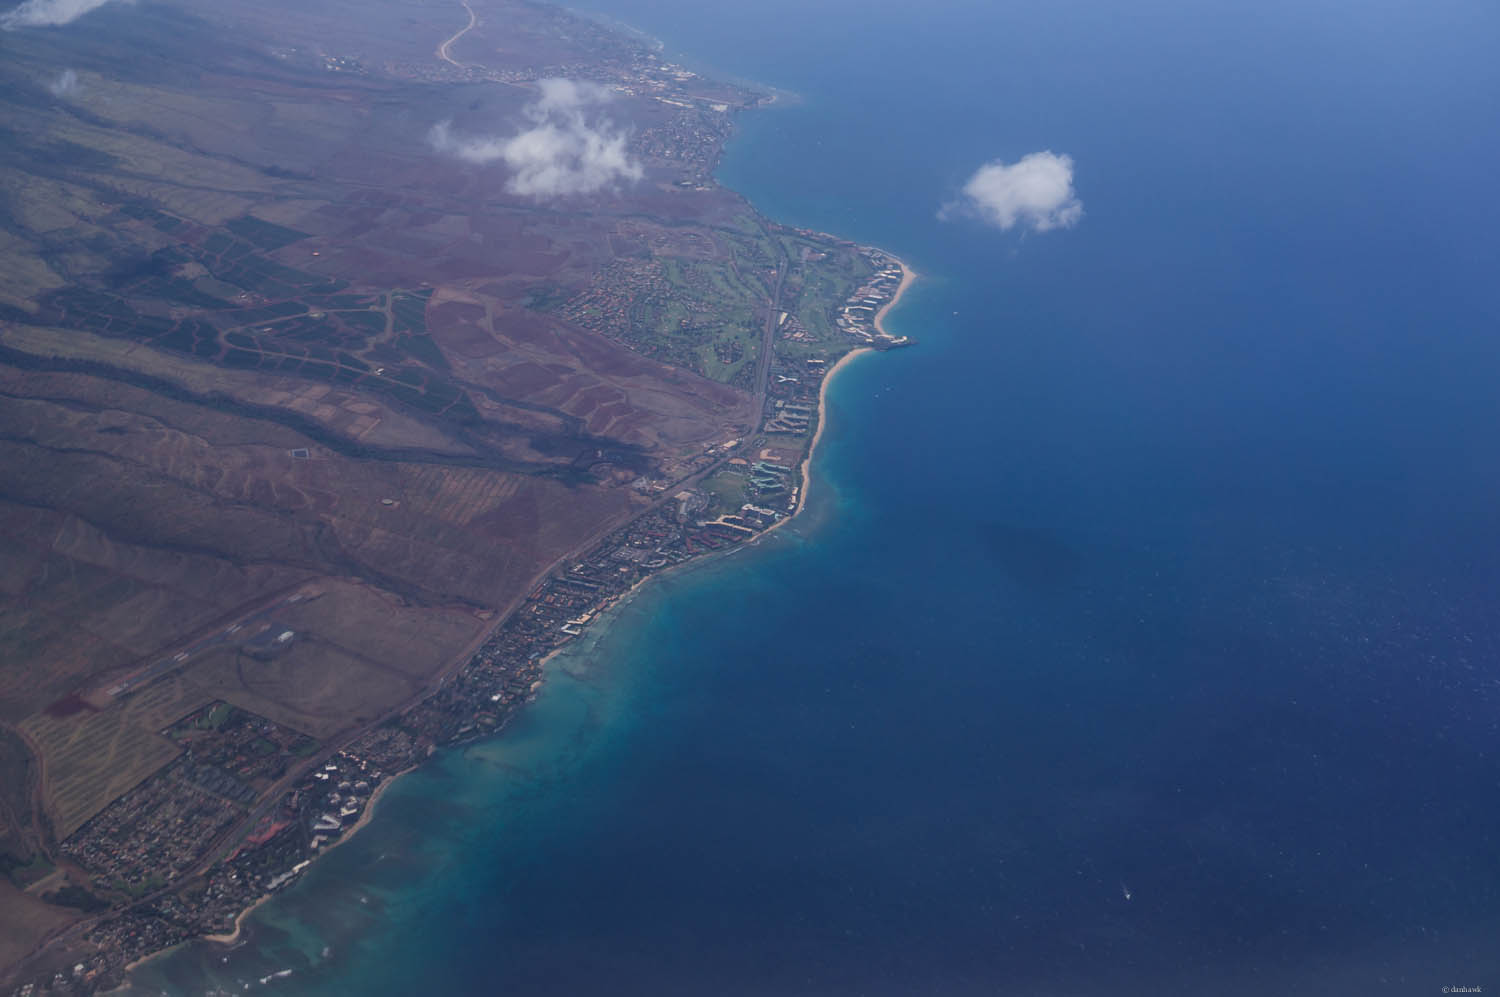 Ka'anapali From the Air | 365 Project | April 25th, 2013 | 35mm, ISO 200, f/4, 1/2500